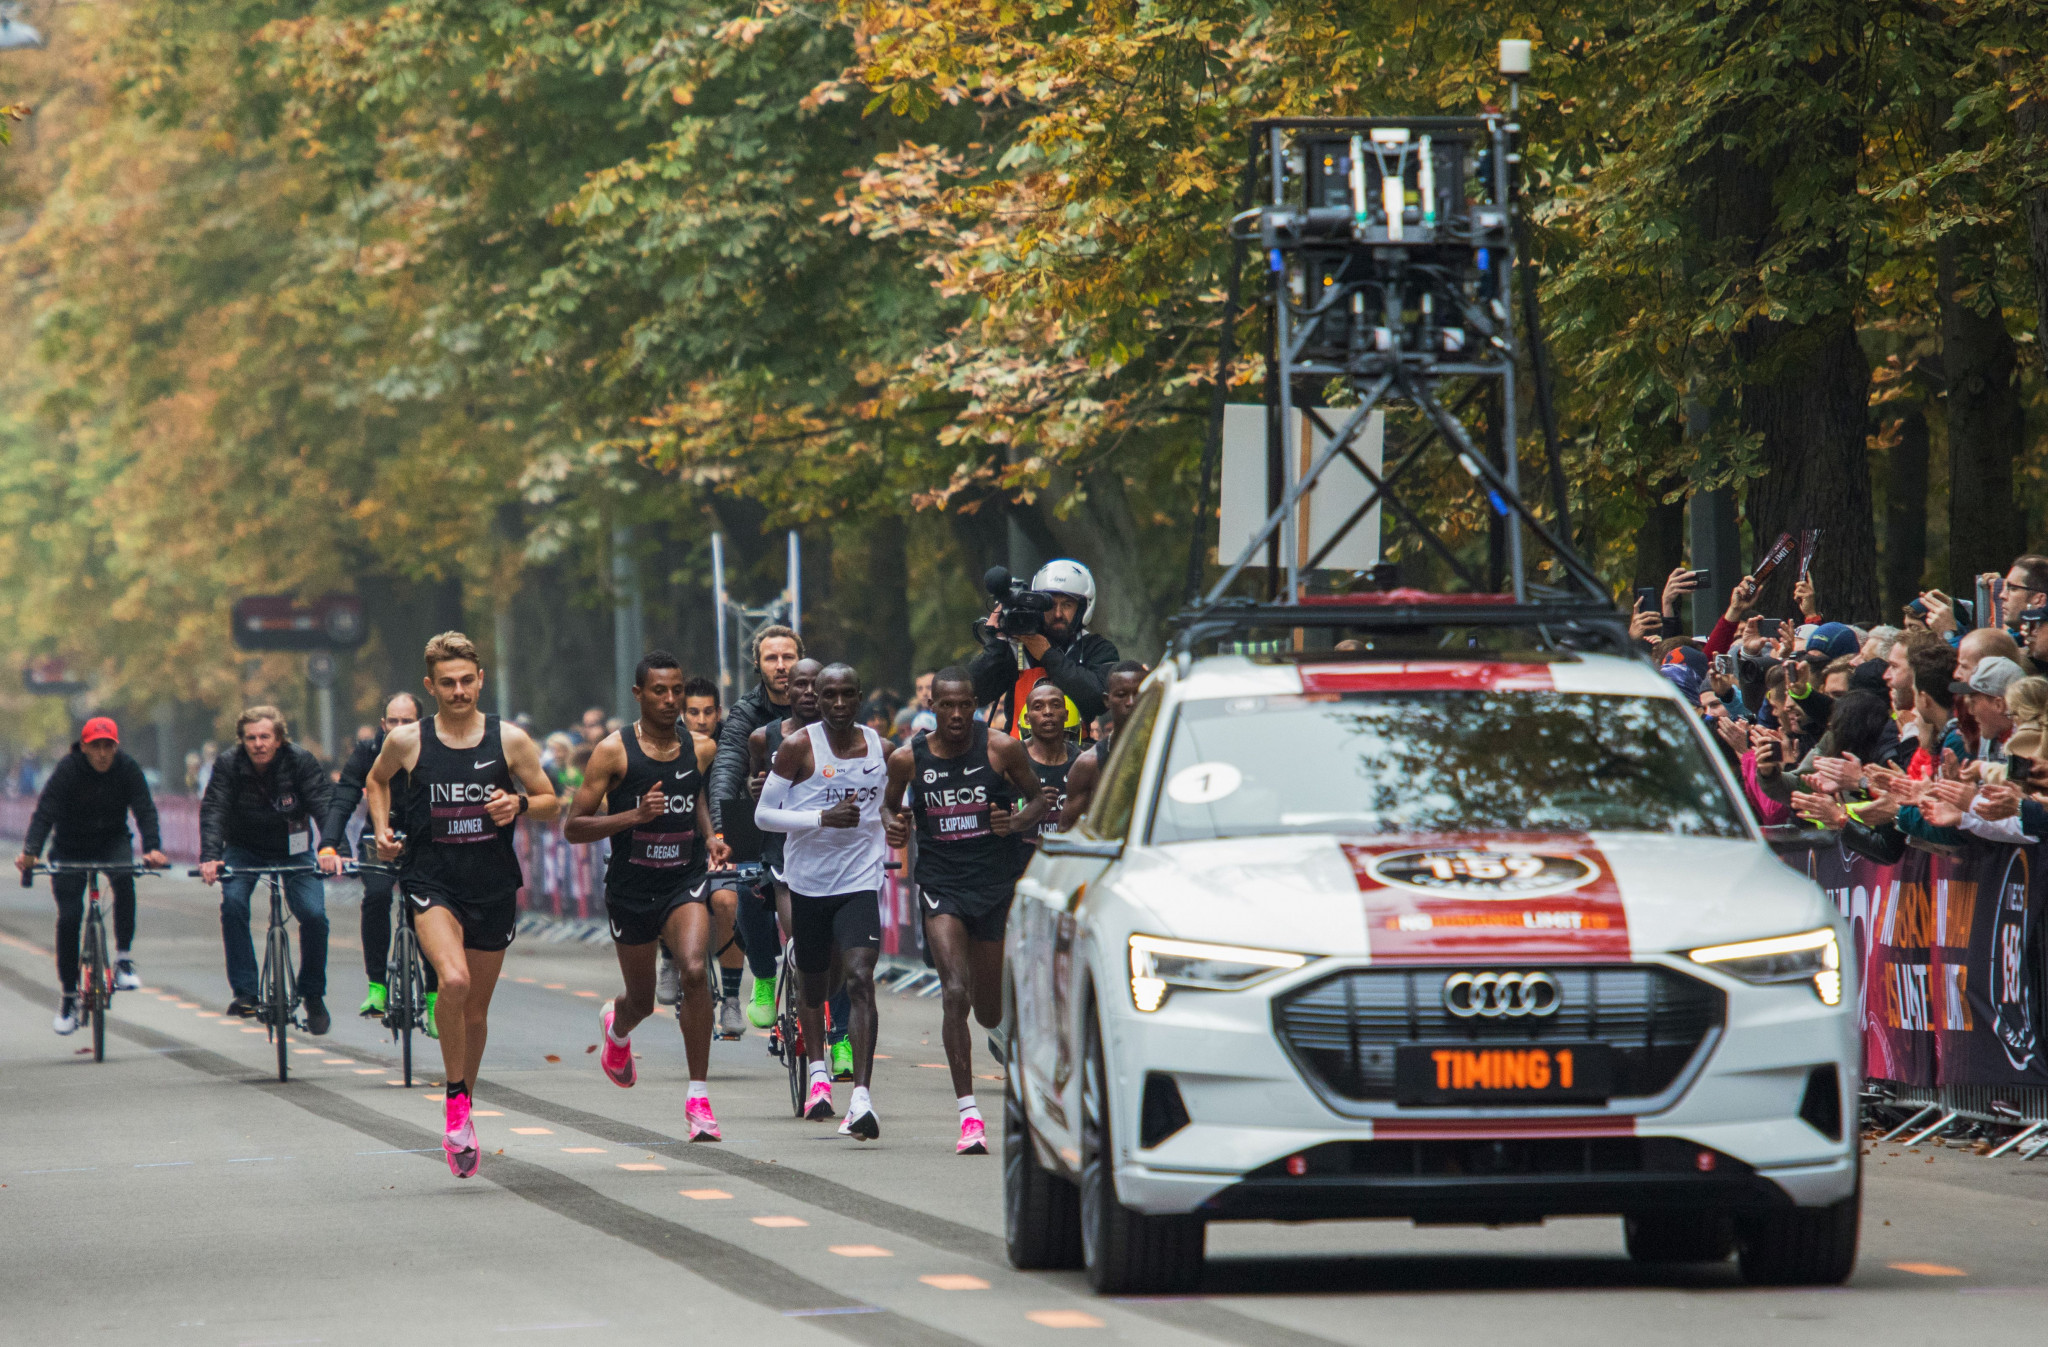 Shoes worn by Eliud Kipchoge during his successful attempt at breaking the two-hour marathon barrier in Vienna last October have been banned under the new rules ©Getty Images